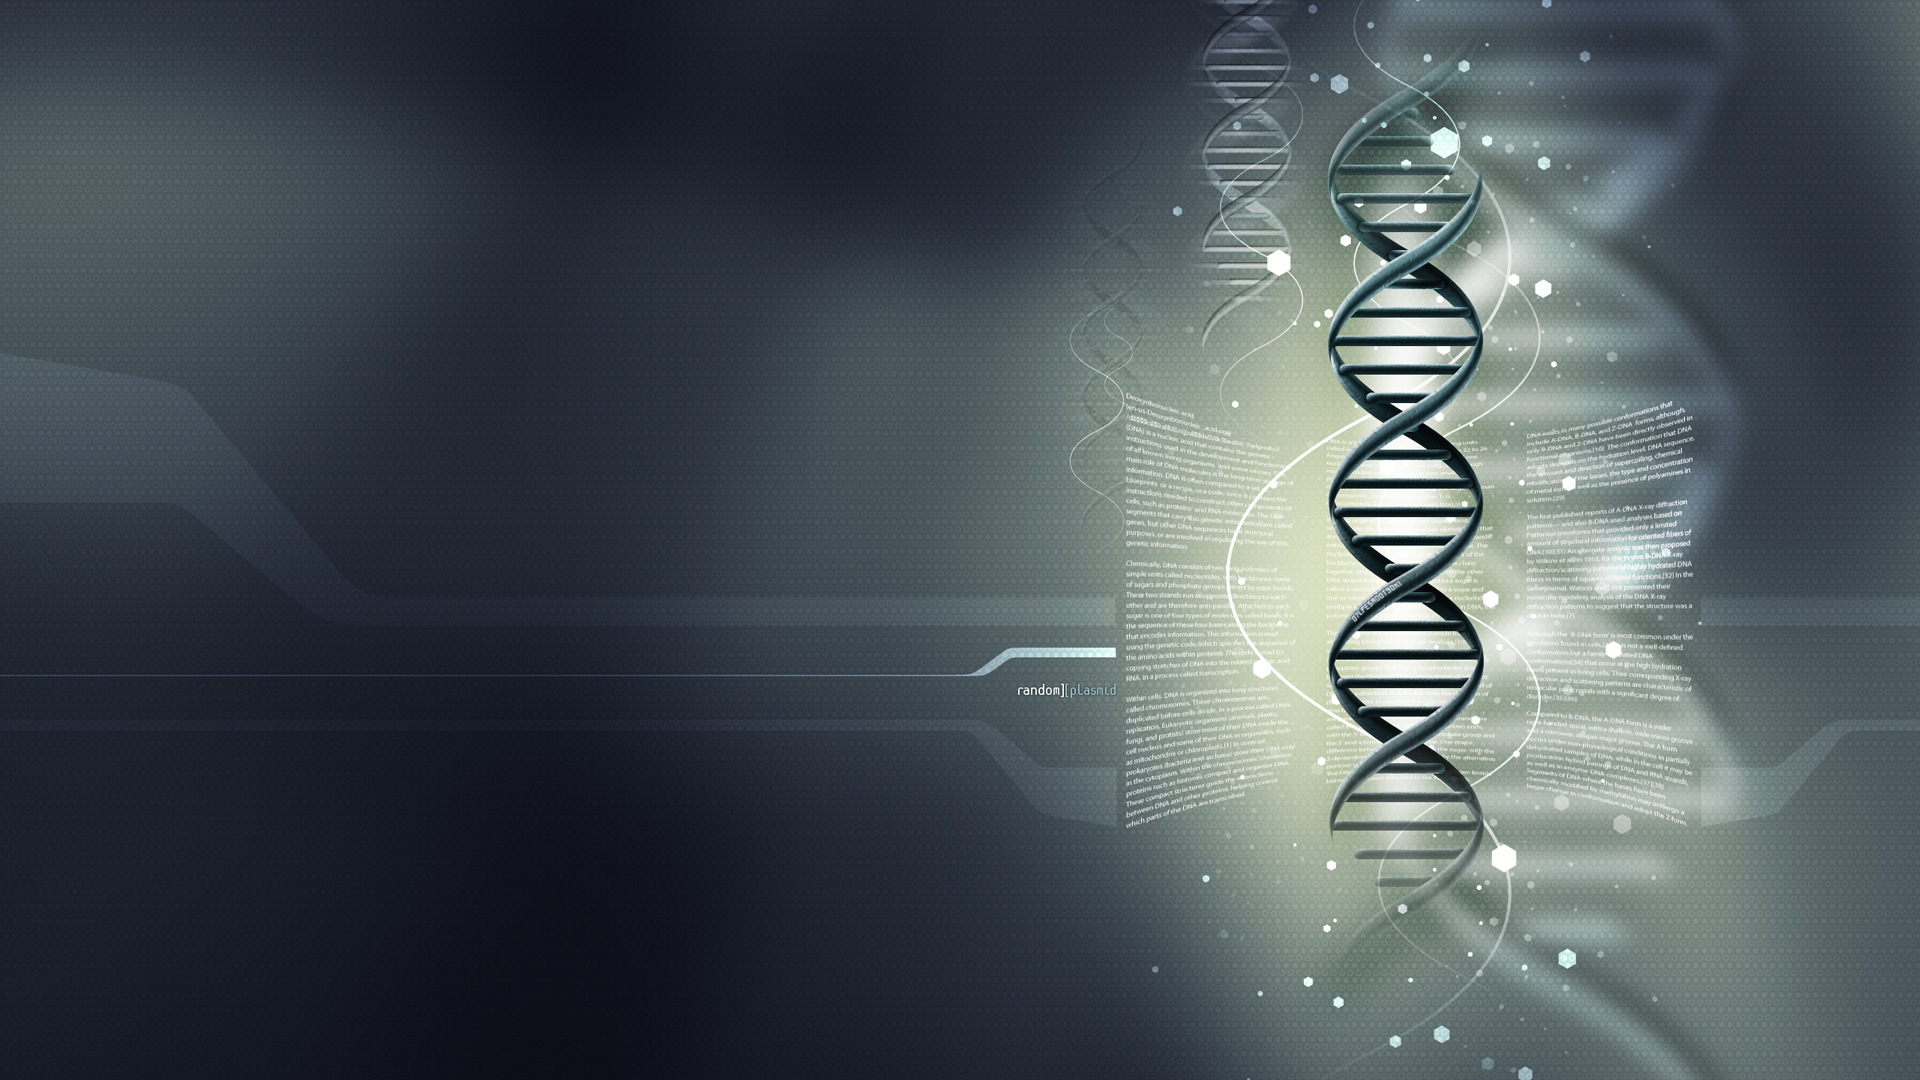 Download Science Dna Wallcg Wallpaper 1920x1080 Full HD Wallpapers 1920x1080